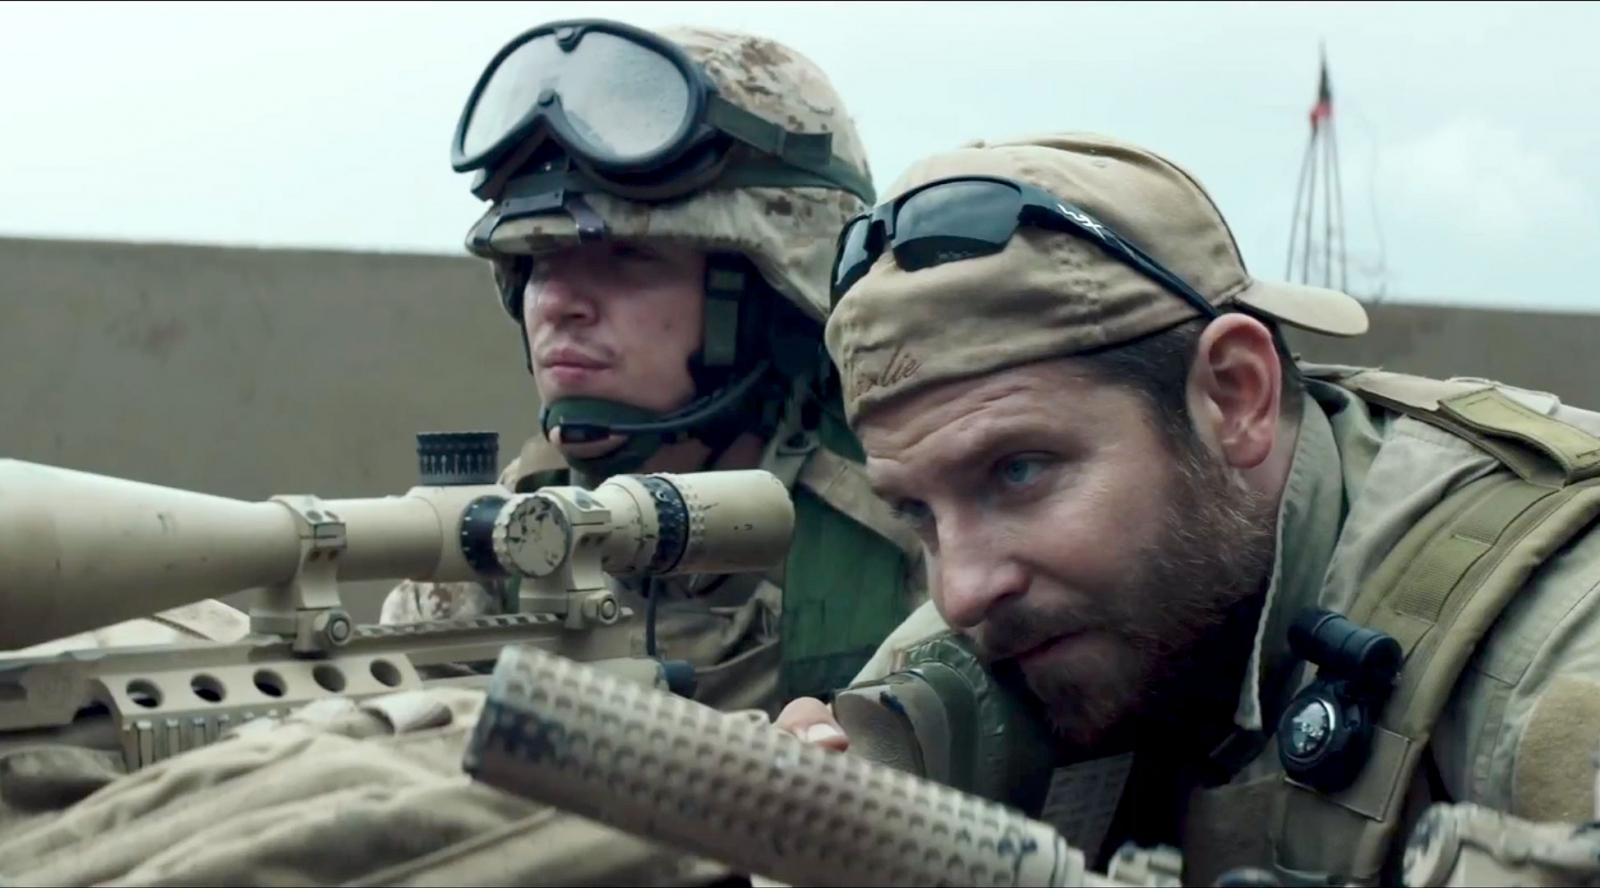 If online piracy determined the Oscars, films like American Sniper and Birdman would rule the roost, but illegal download would affect each film differently